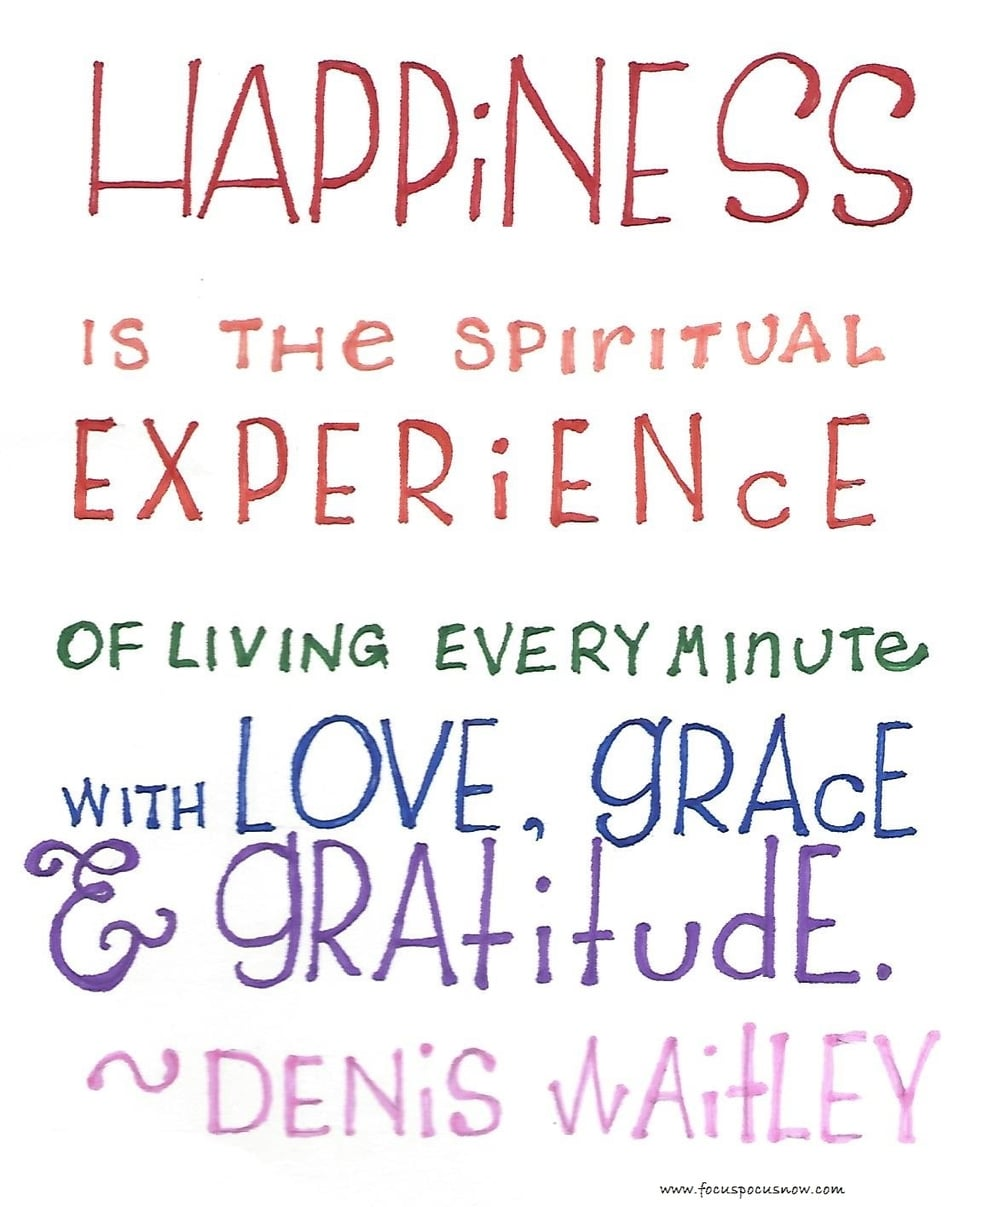 Happiness quote by Waitley.jpg